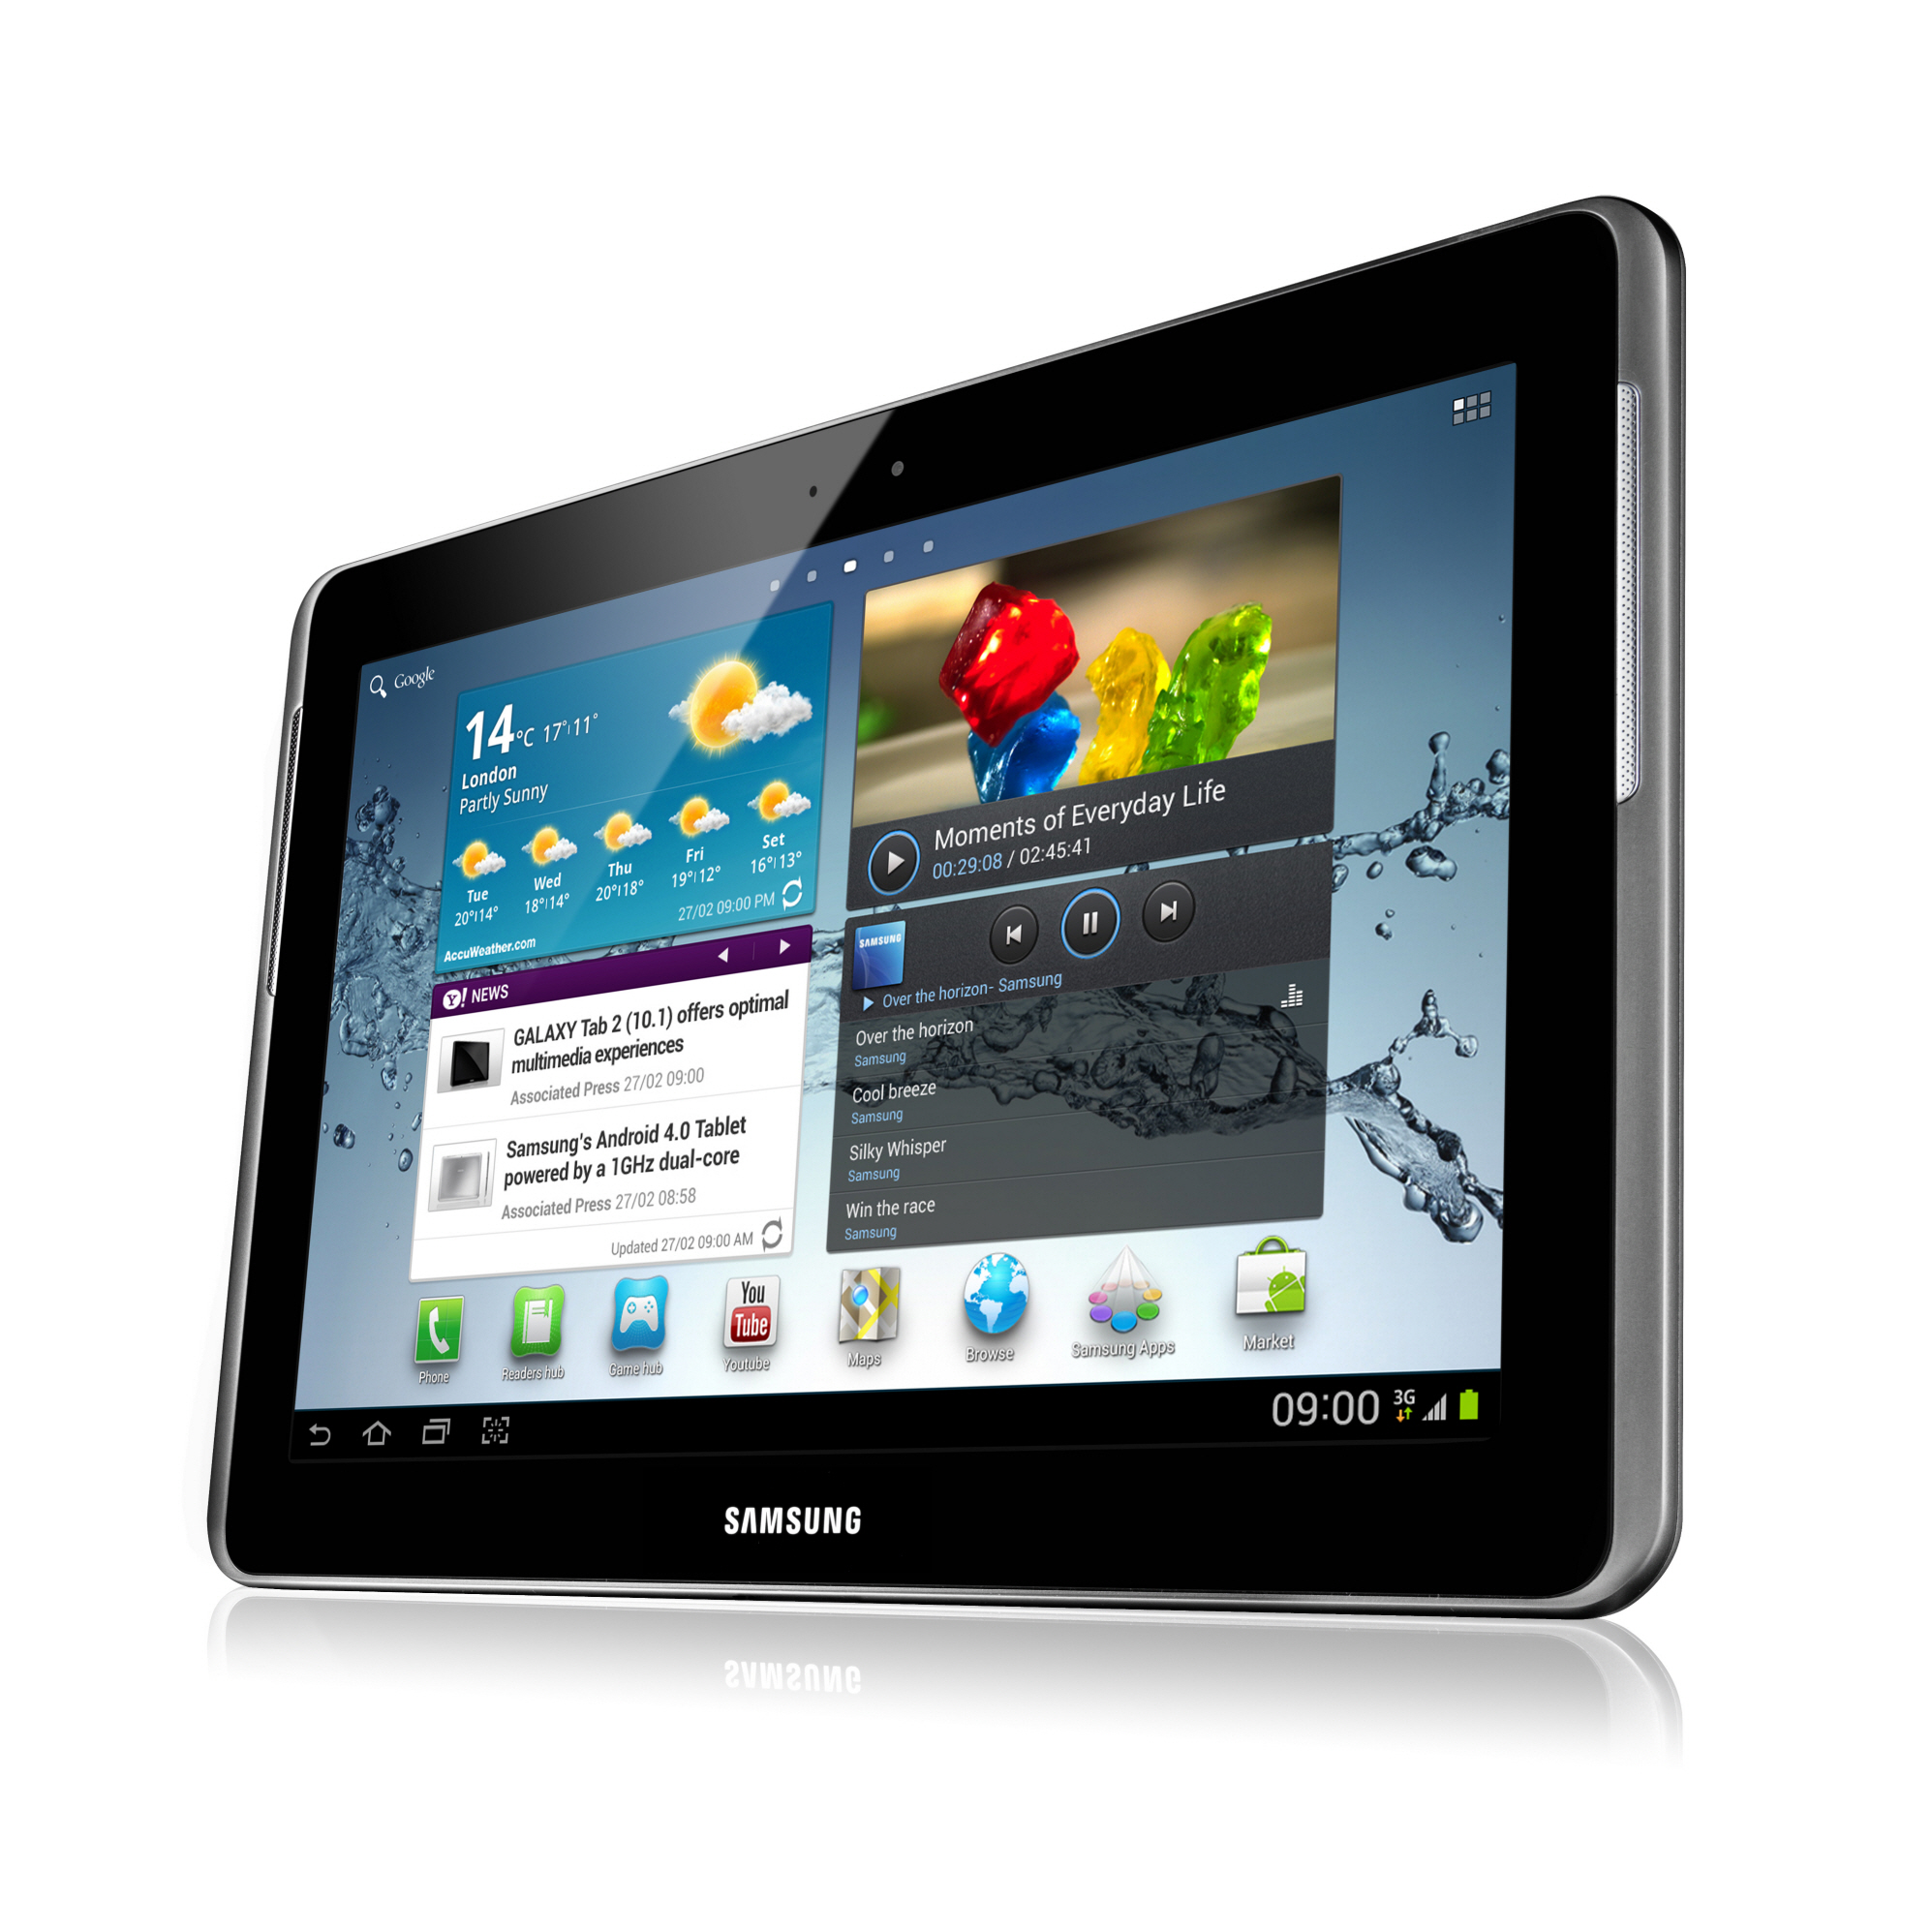 Samsung Galaxy Tab 2 10.1 production halted for switch to quad-core